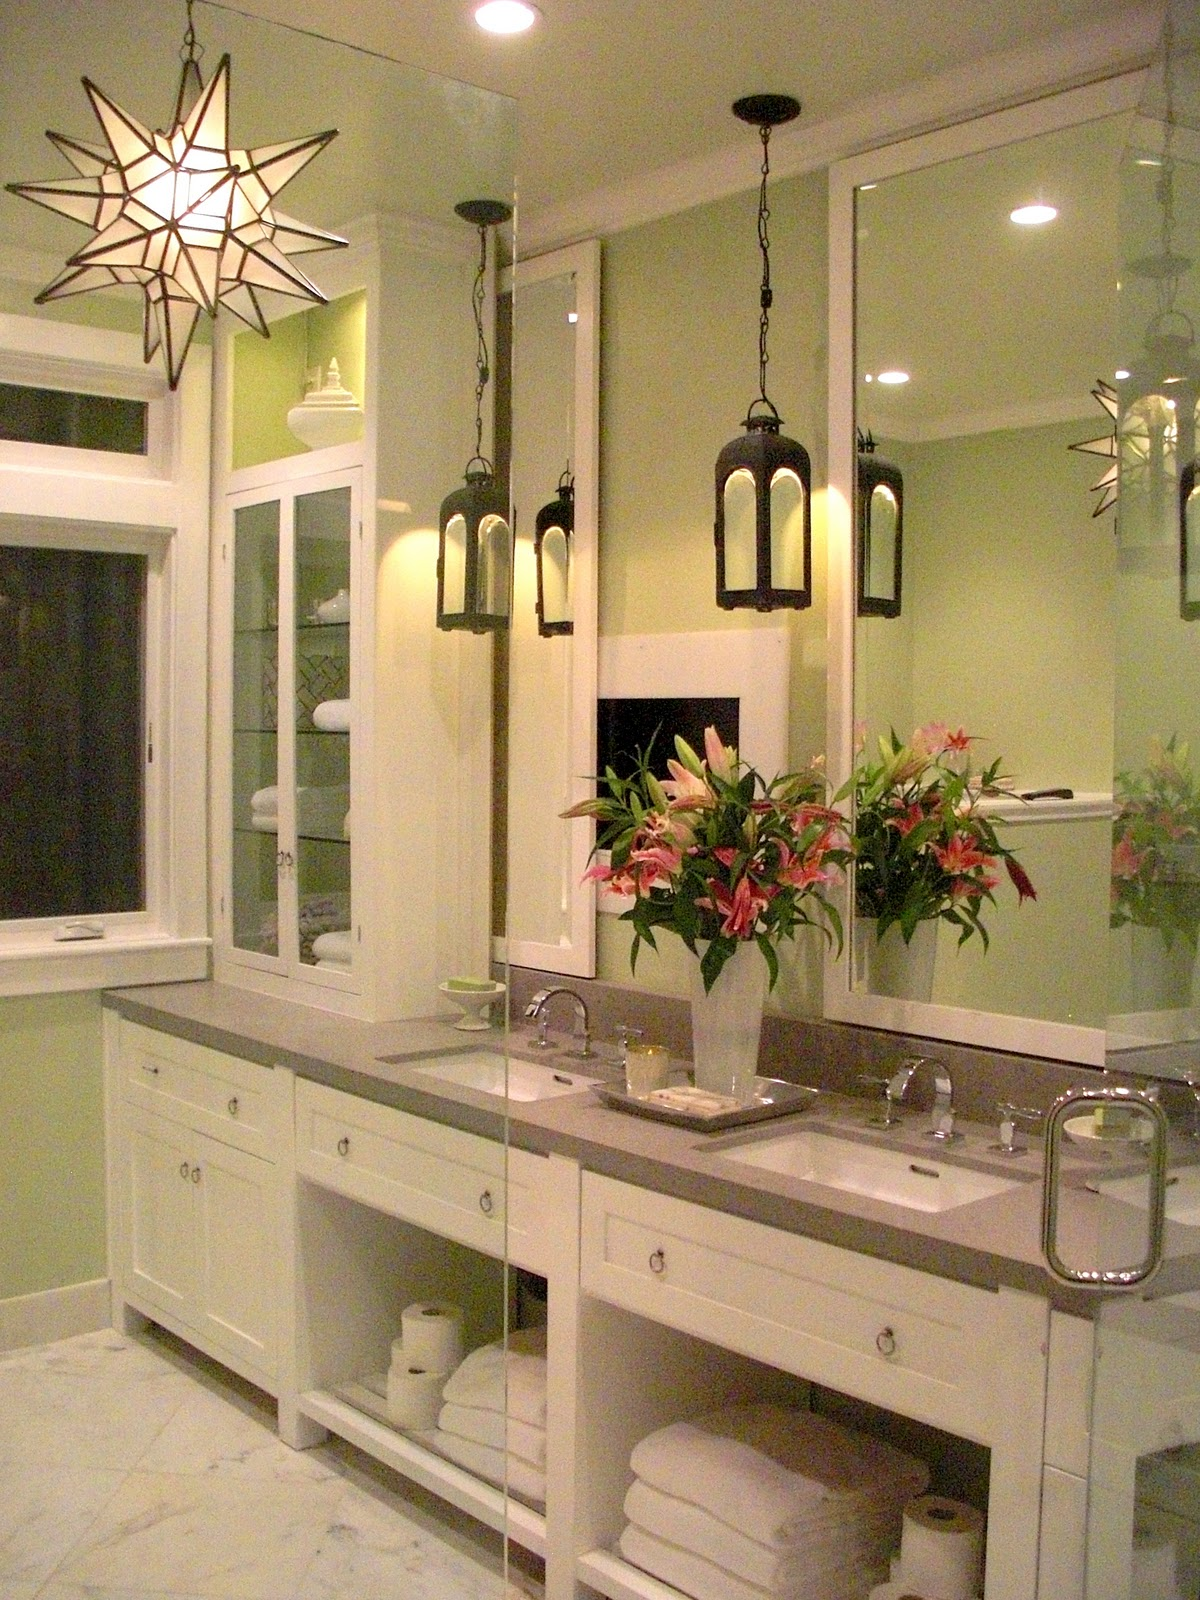 Katiedid katie denham interiors on bath crashers for Bathroom pendant lighting fixtures